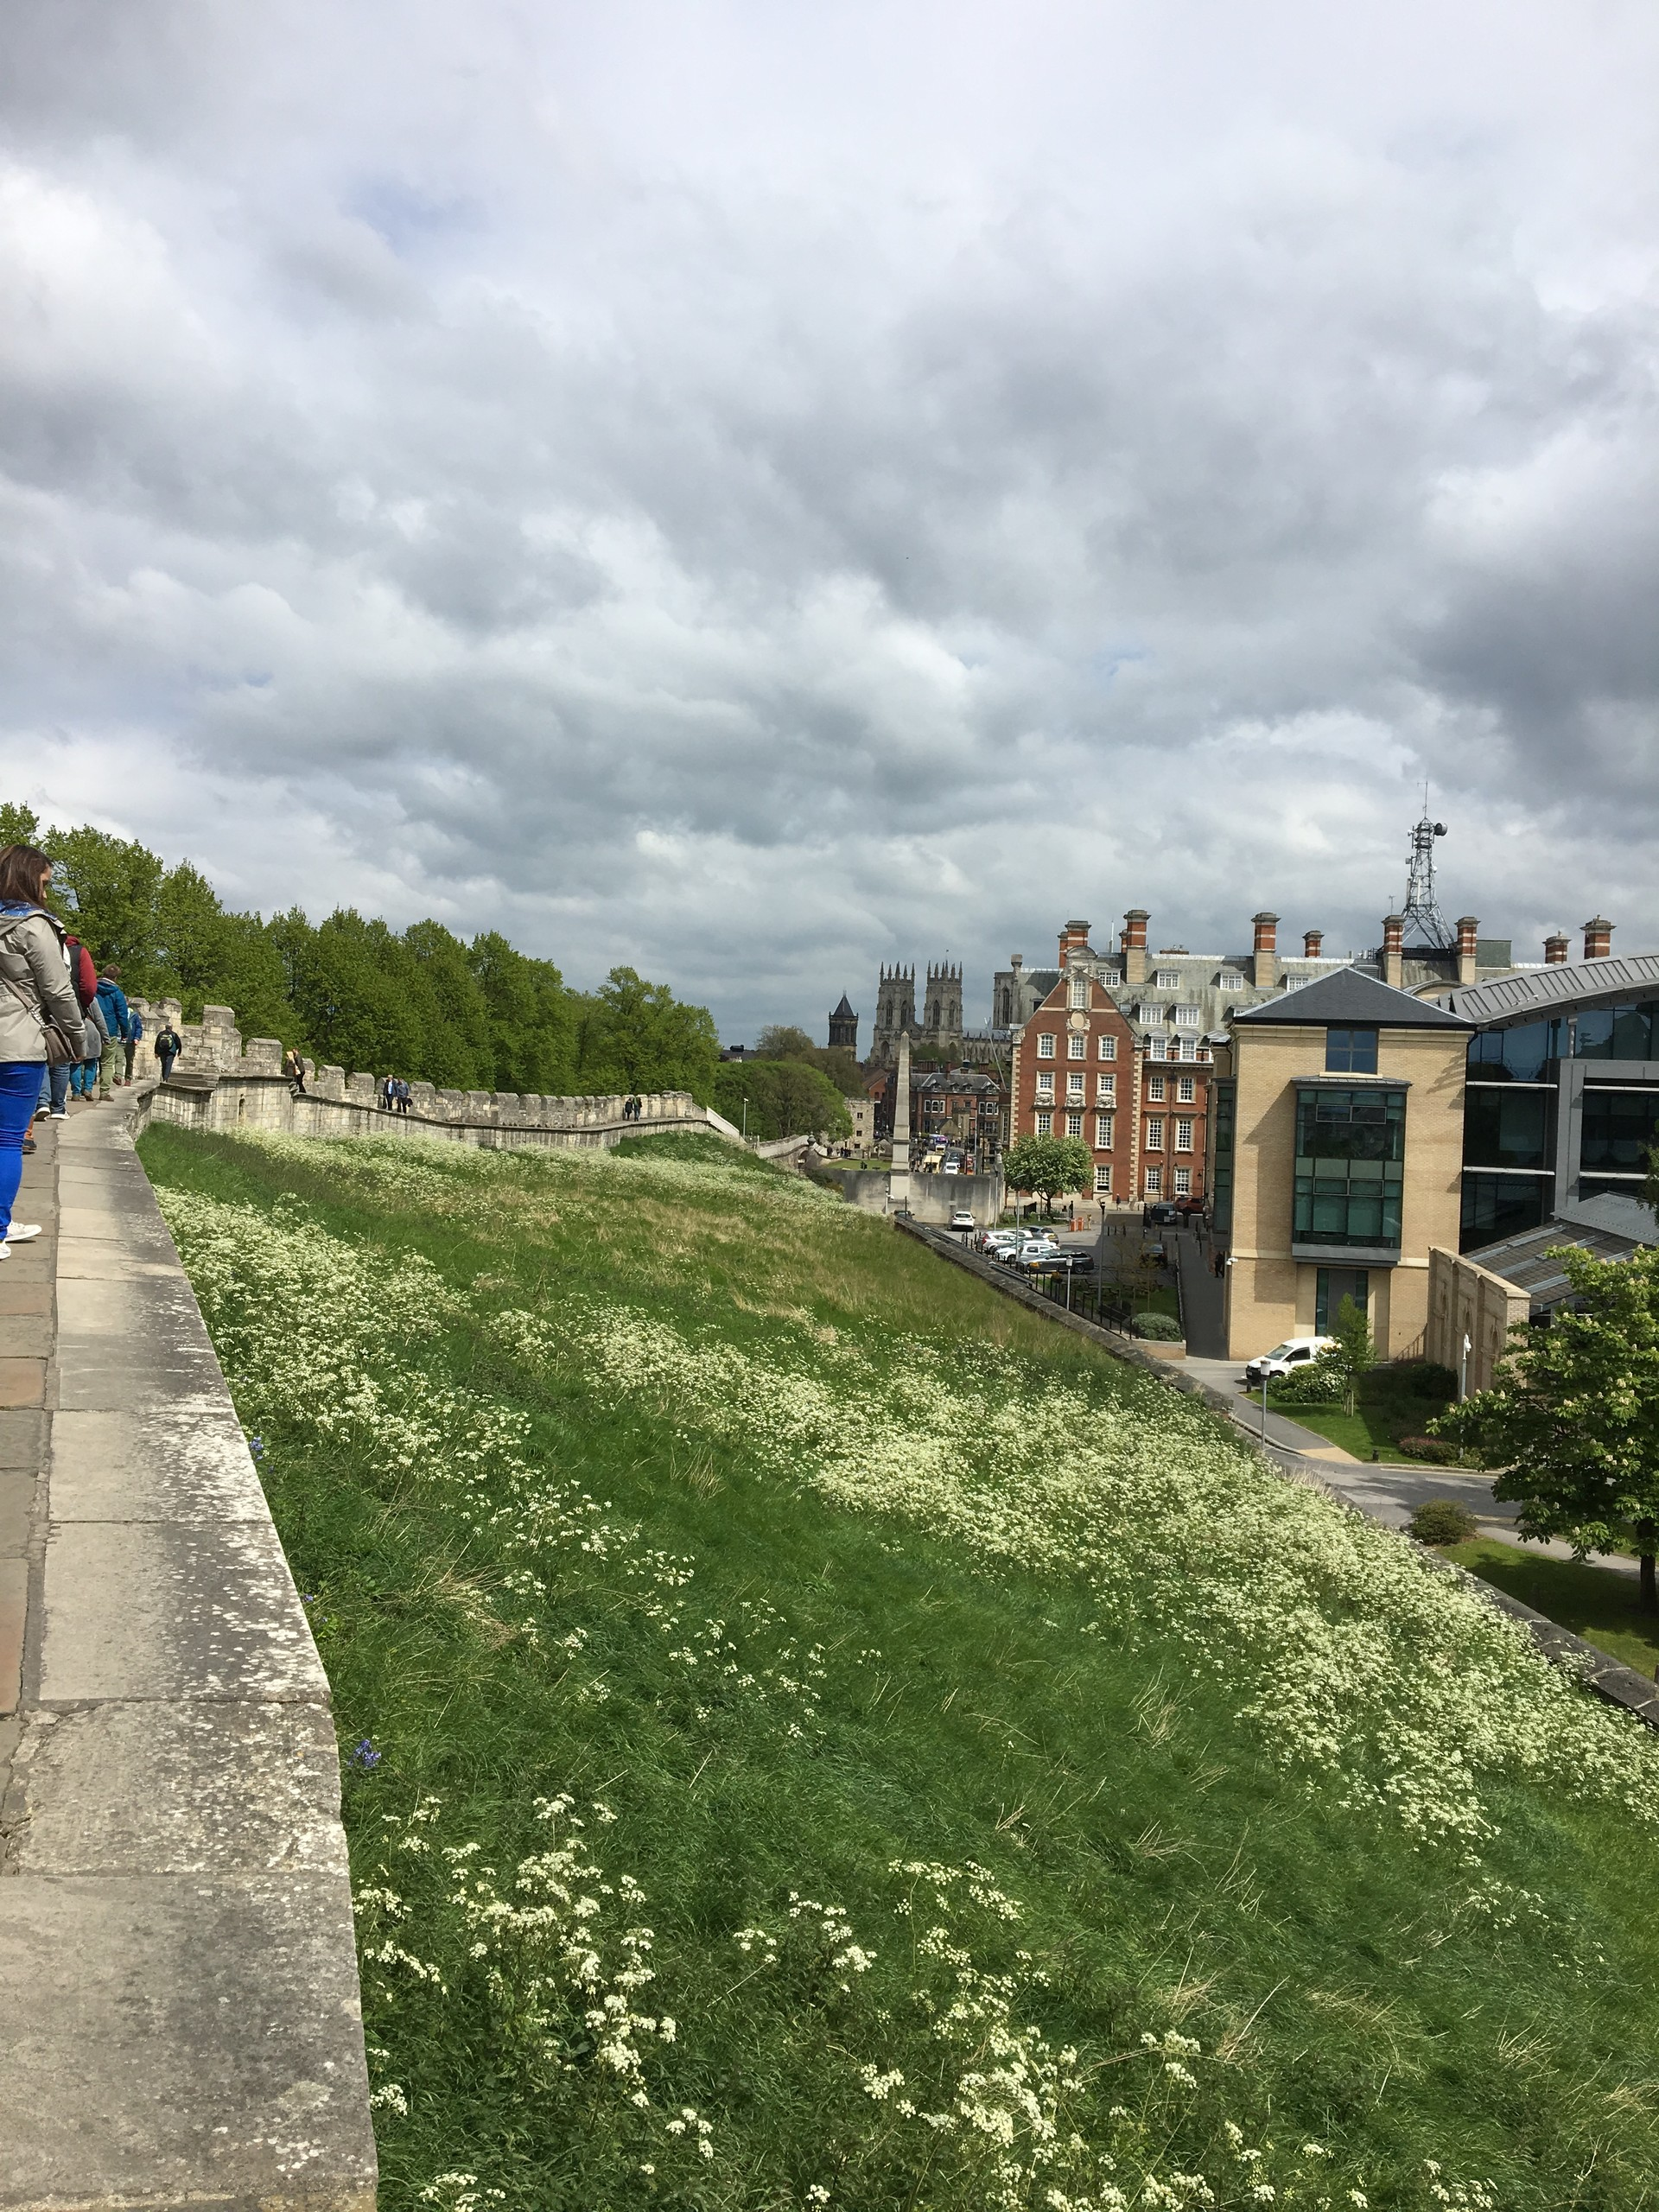 A walk around the old city walls of York